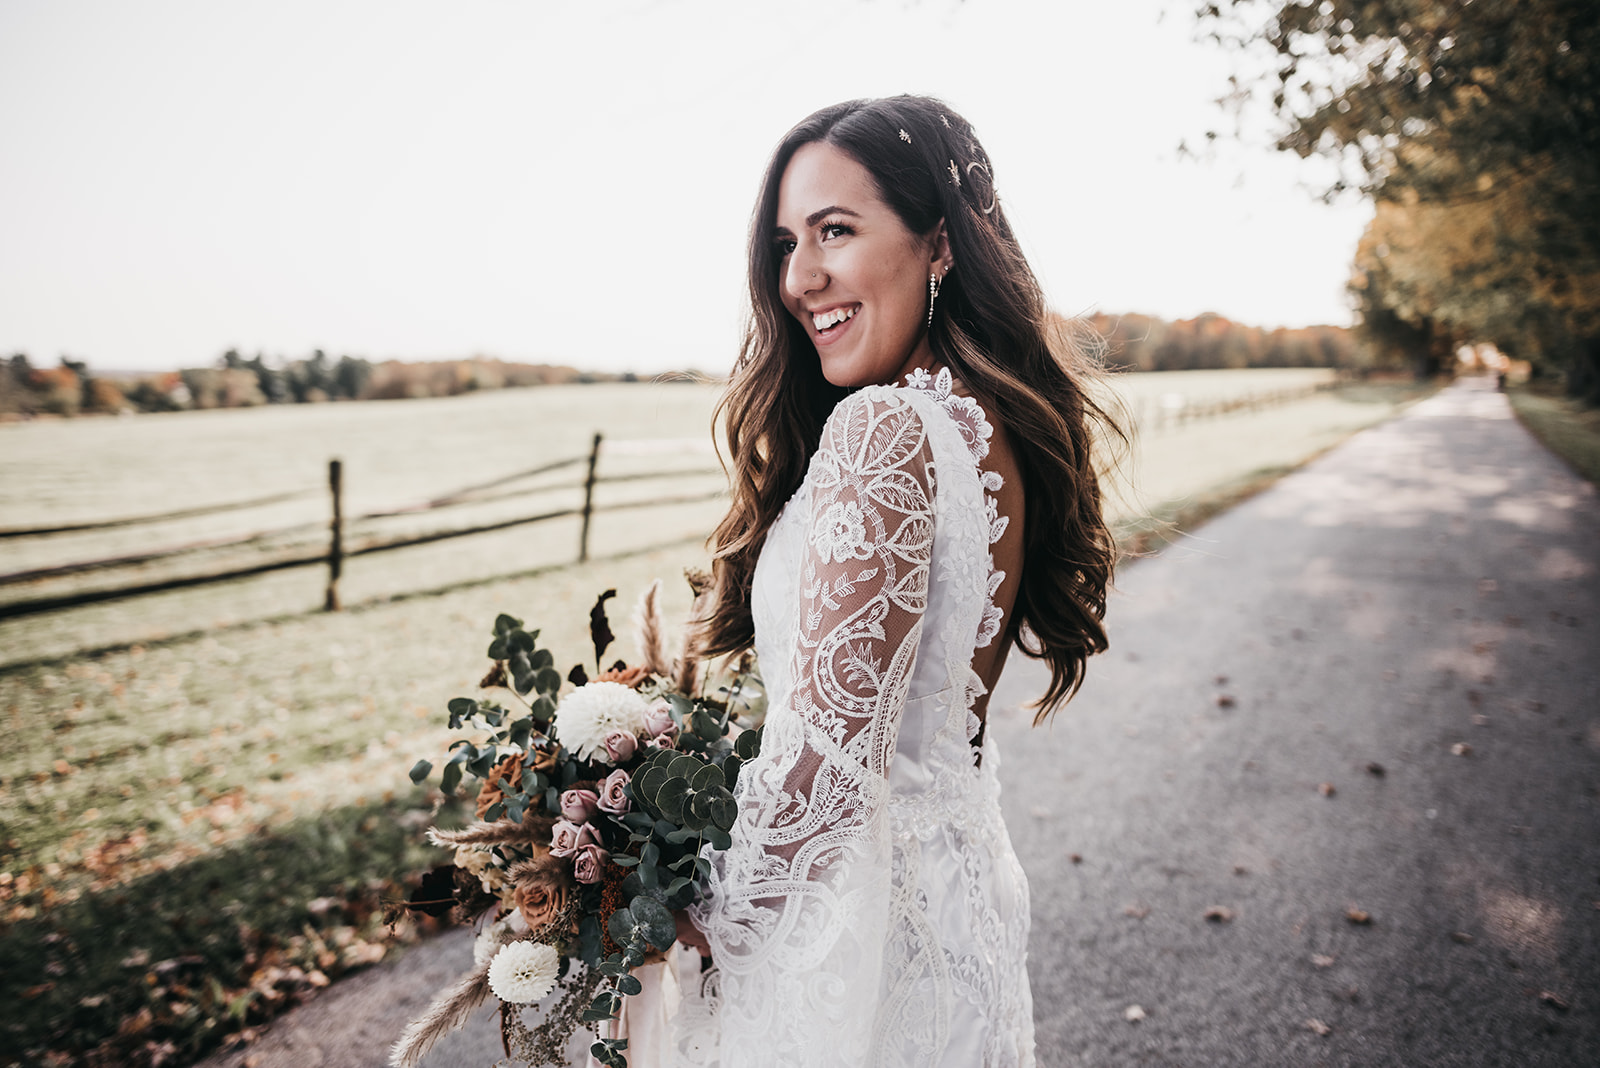 Kassie's Lace Bell Sleeve Wedding Dress Transformation